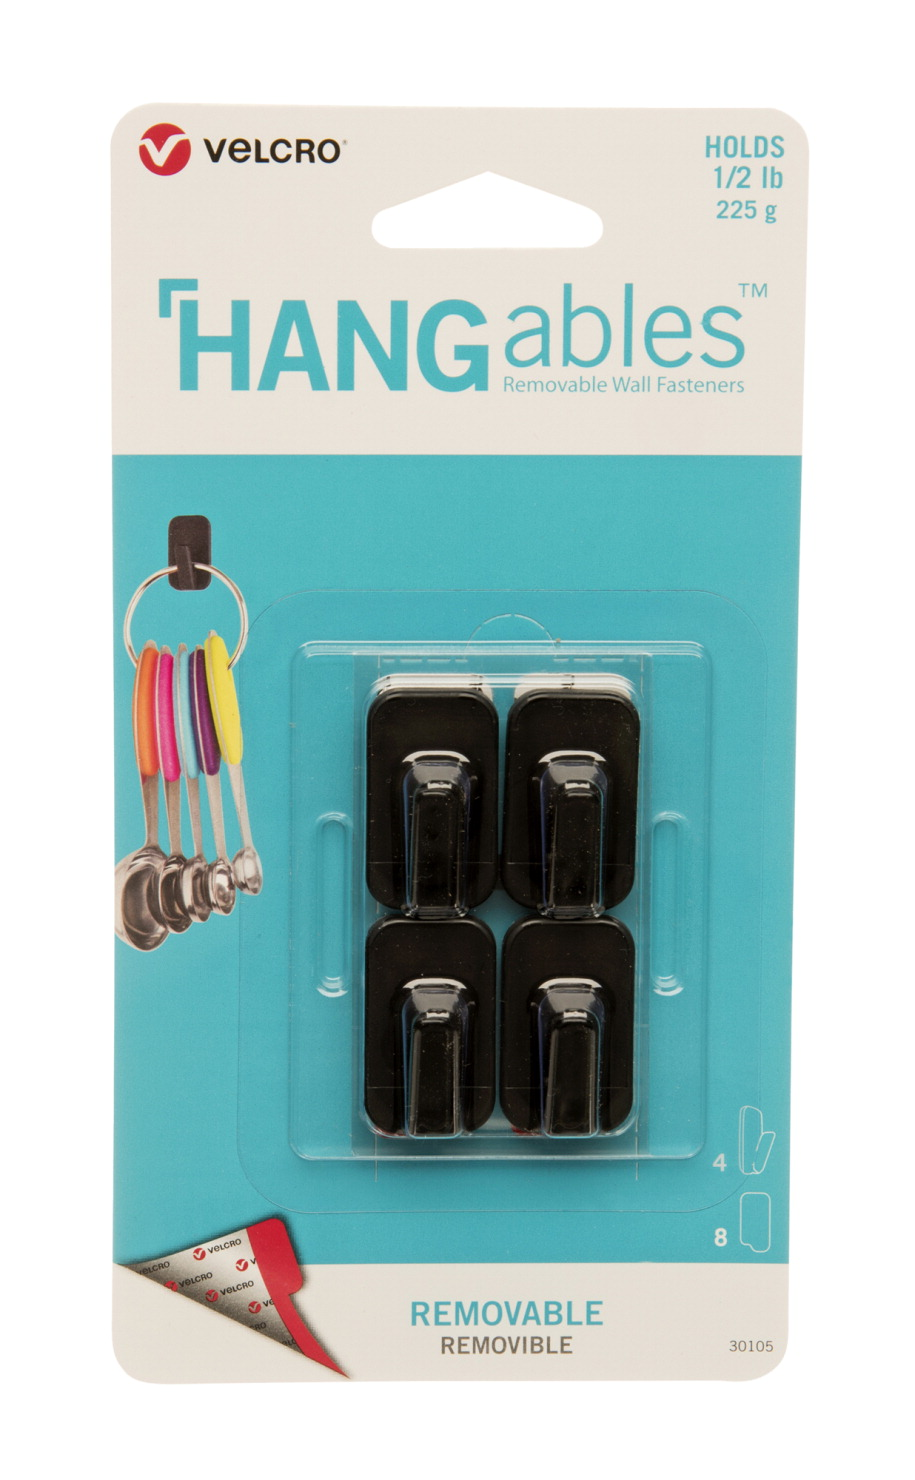 VELCRO Brand HANGables Removable Micro Hooks, 1/2 lb Capacity, Black, Pack of 4